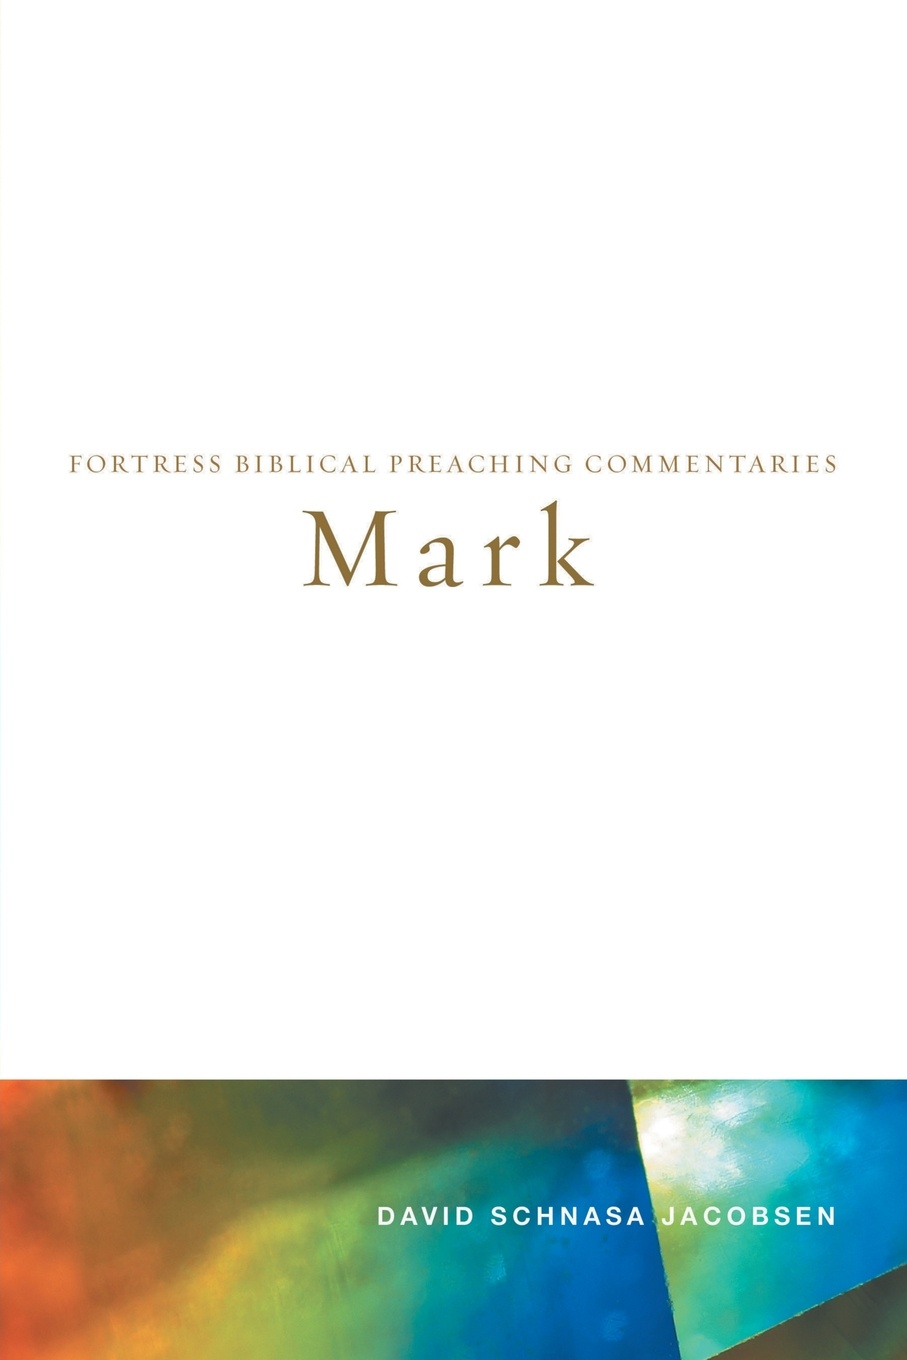 Фото - Mark. Fortress Biblical Preaching Commentaries david woodard the narrative of captain david woodard and four seamen who lost their ship while in a boat at sea and surrendered themselves up to the malays in the sufferings and their escape from the